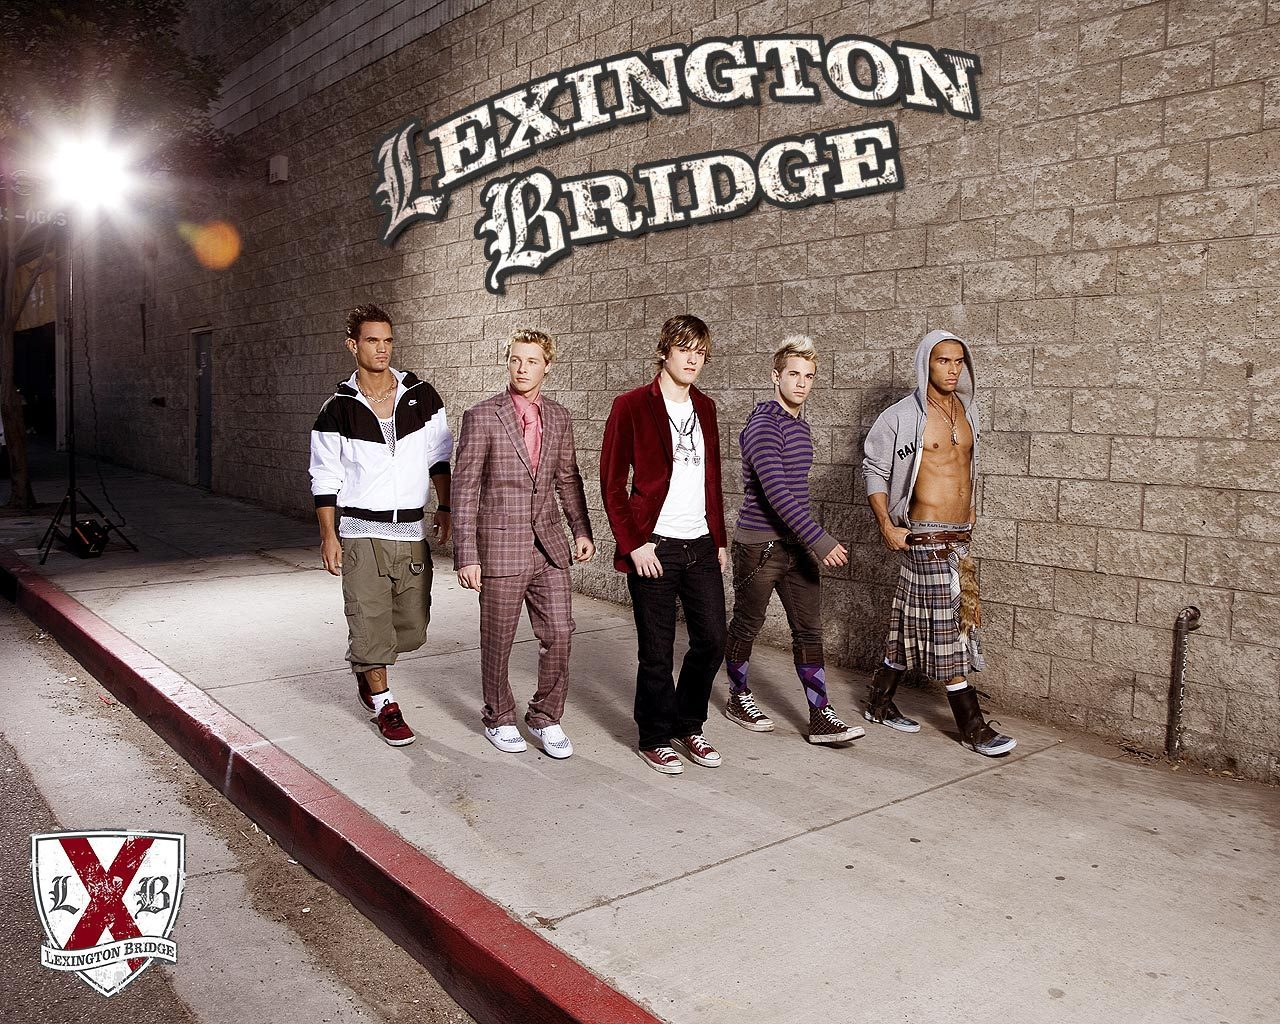 Lexington Bridge wallpaper